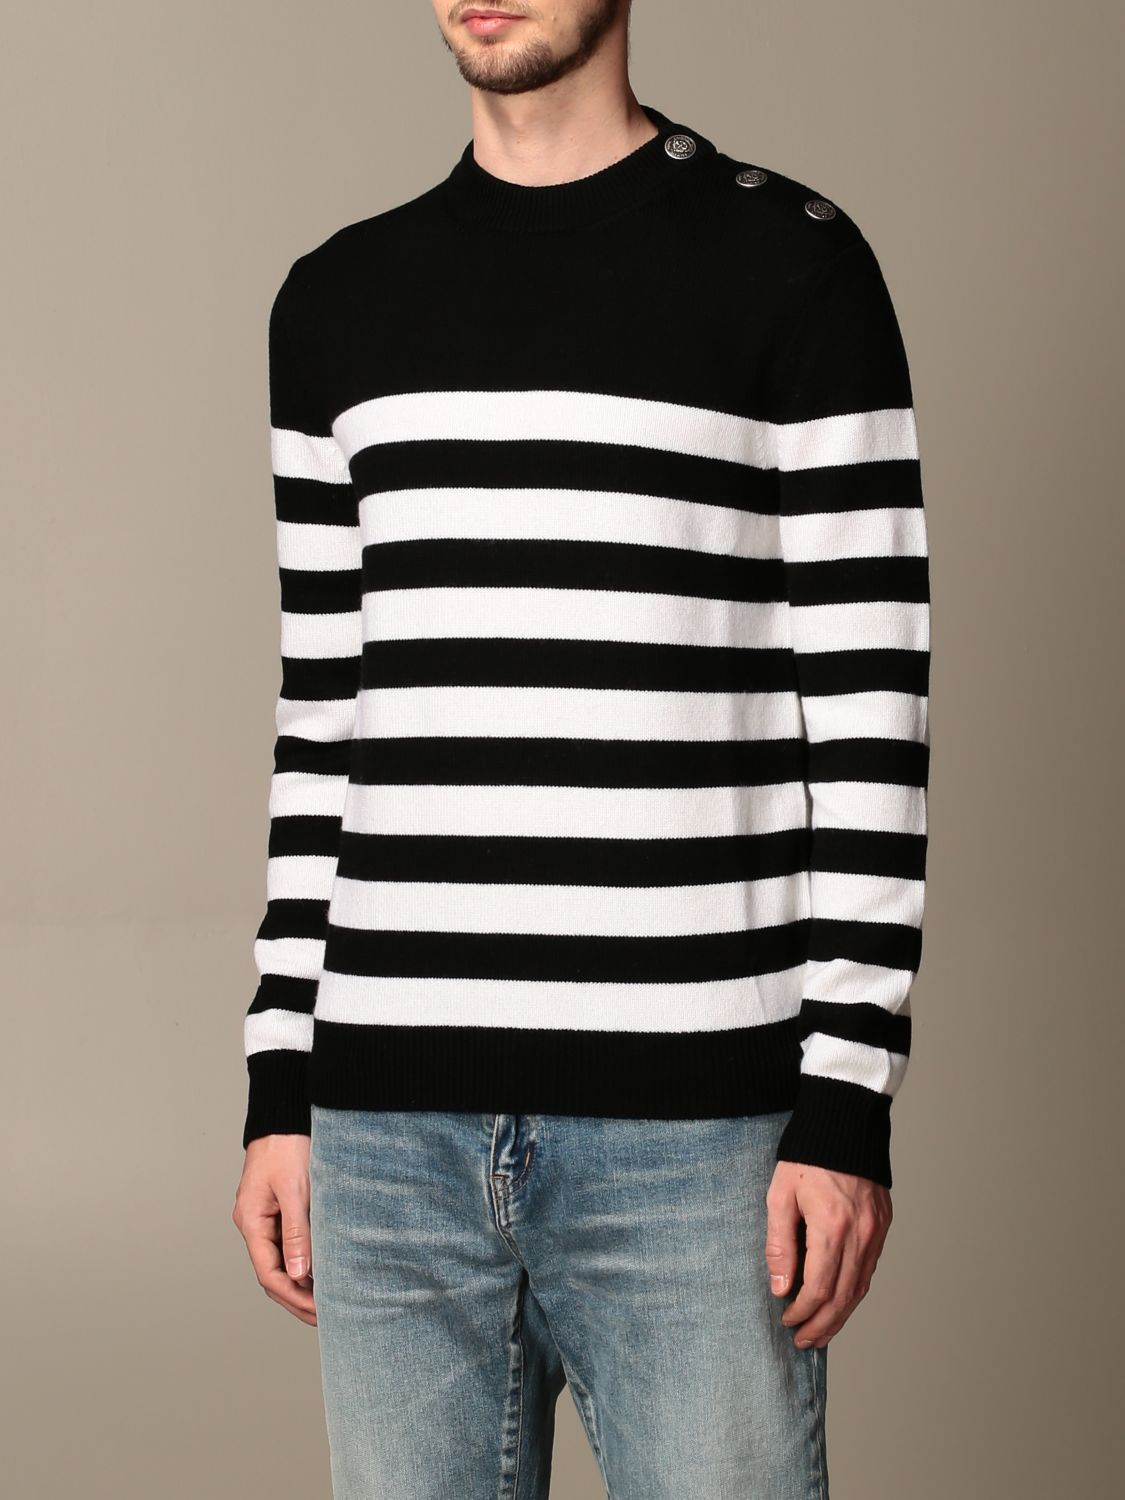 Sweater Balmain: Balmain striped pullover with buttons black 3